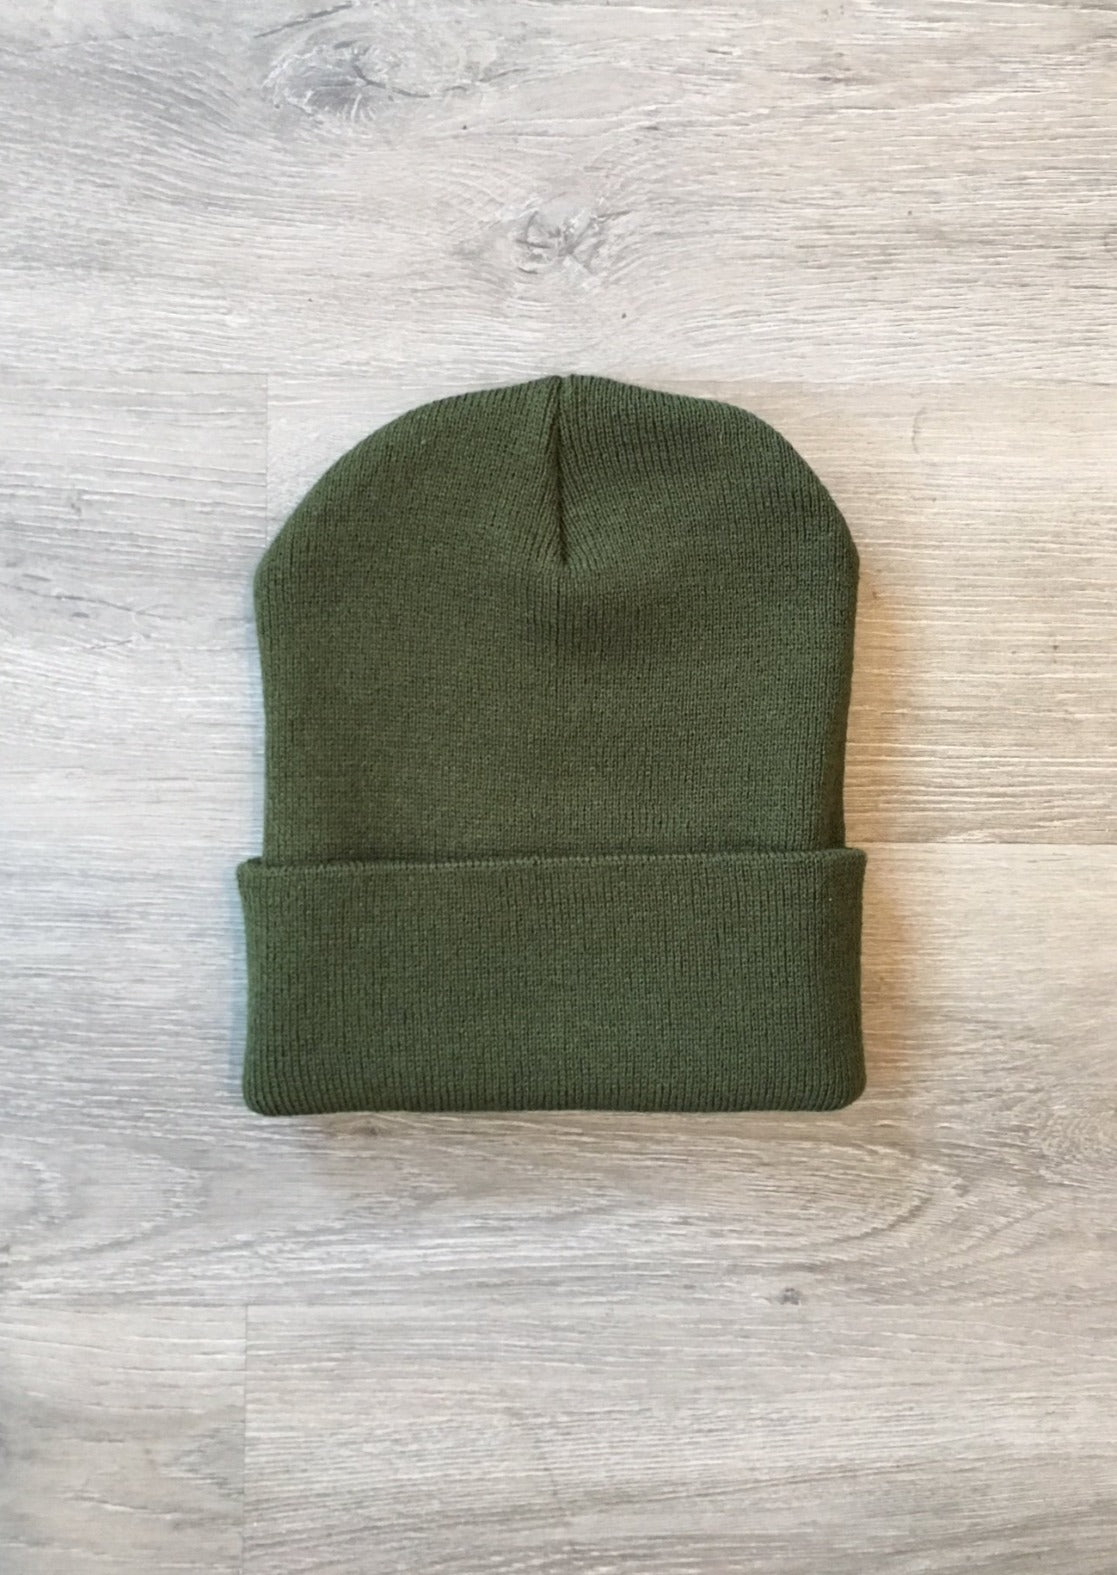 Made in USA Classic Cuffed Beanie Unisex Olive Green